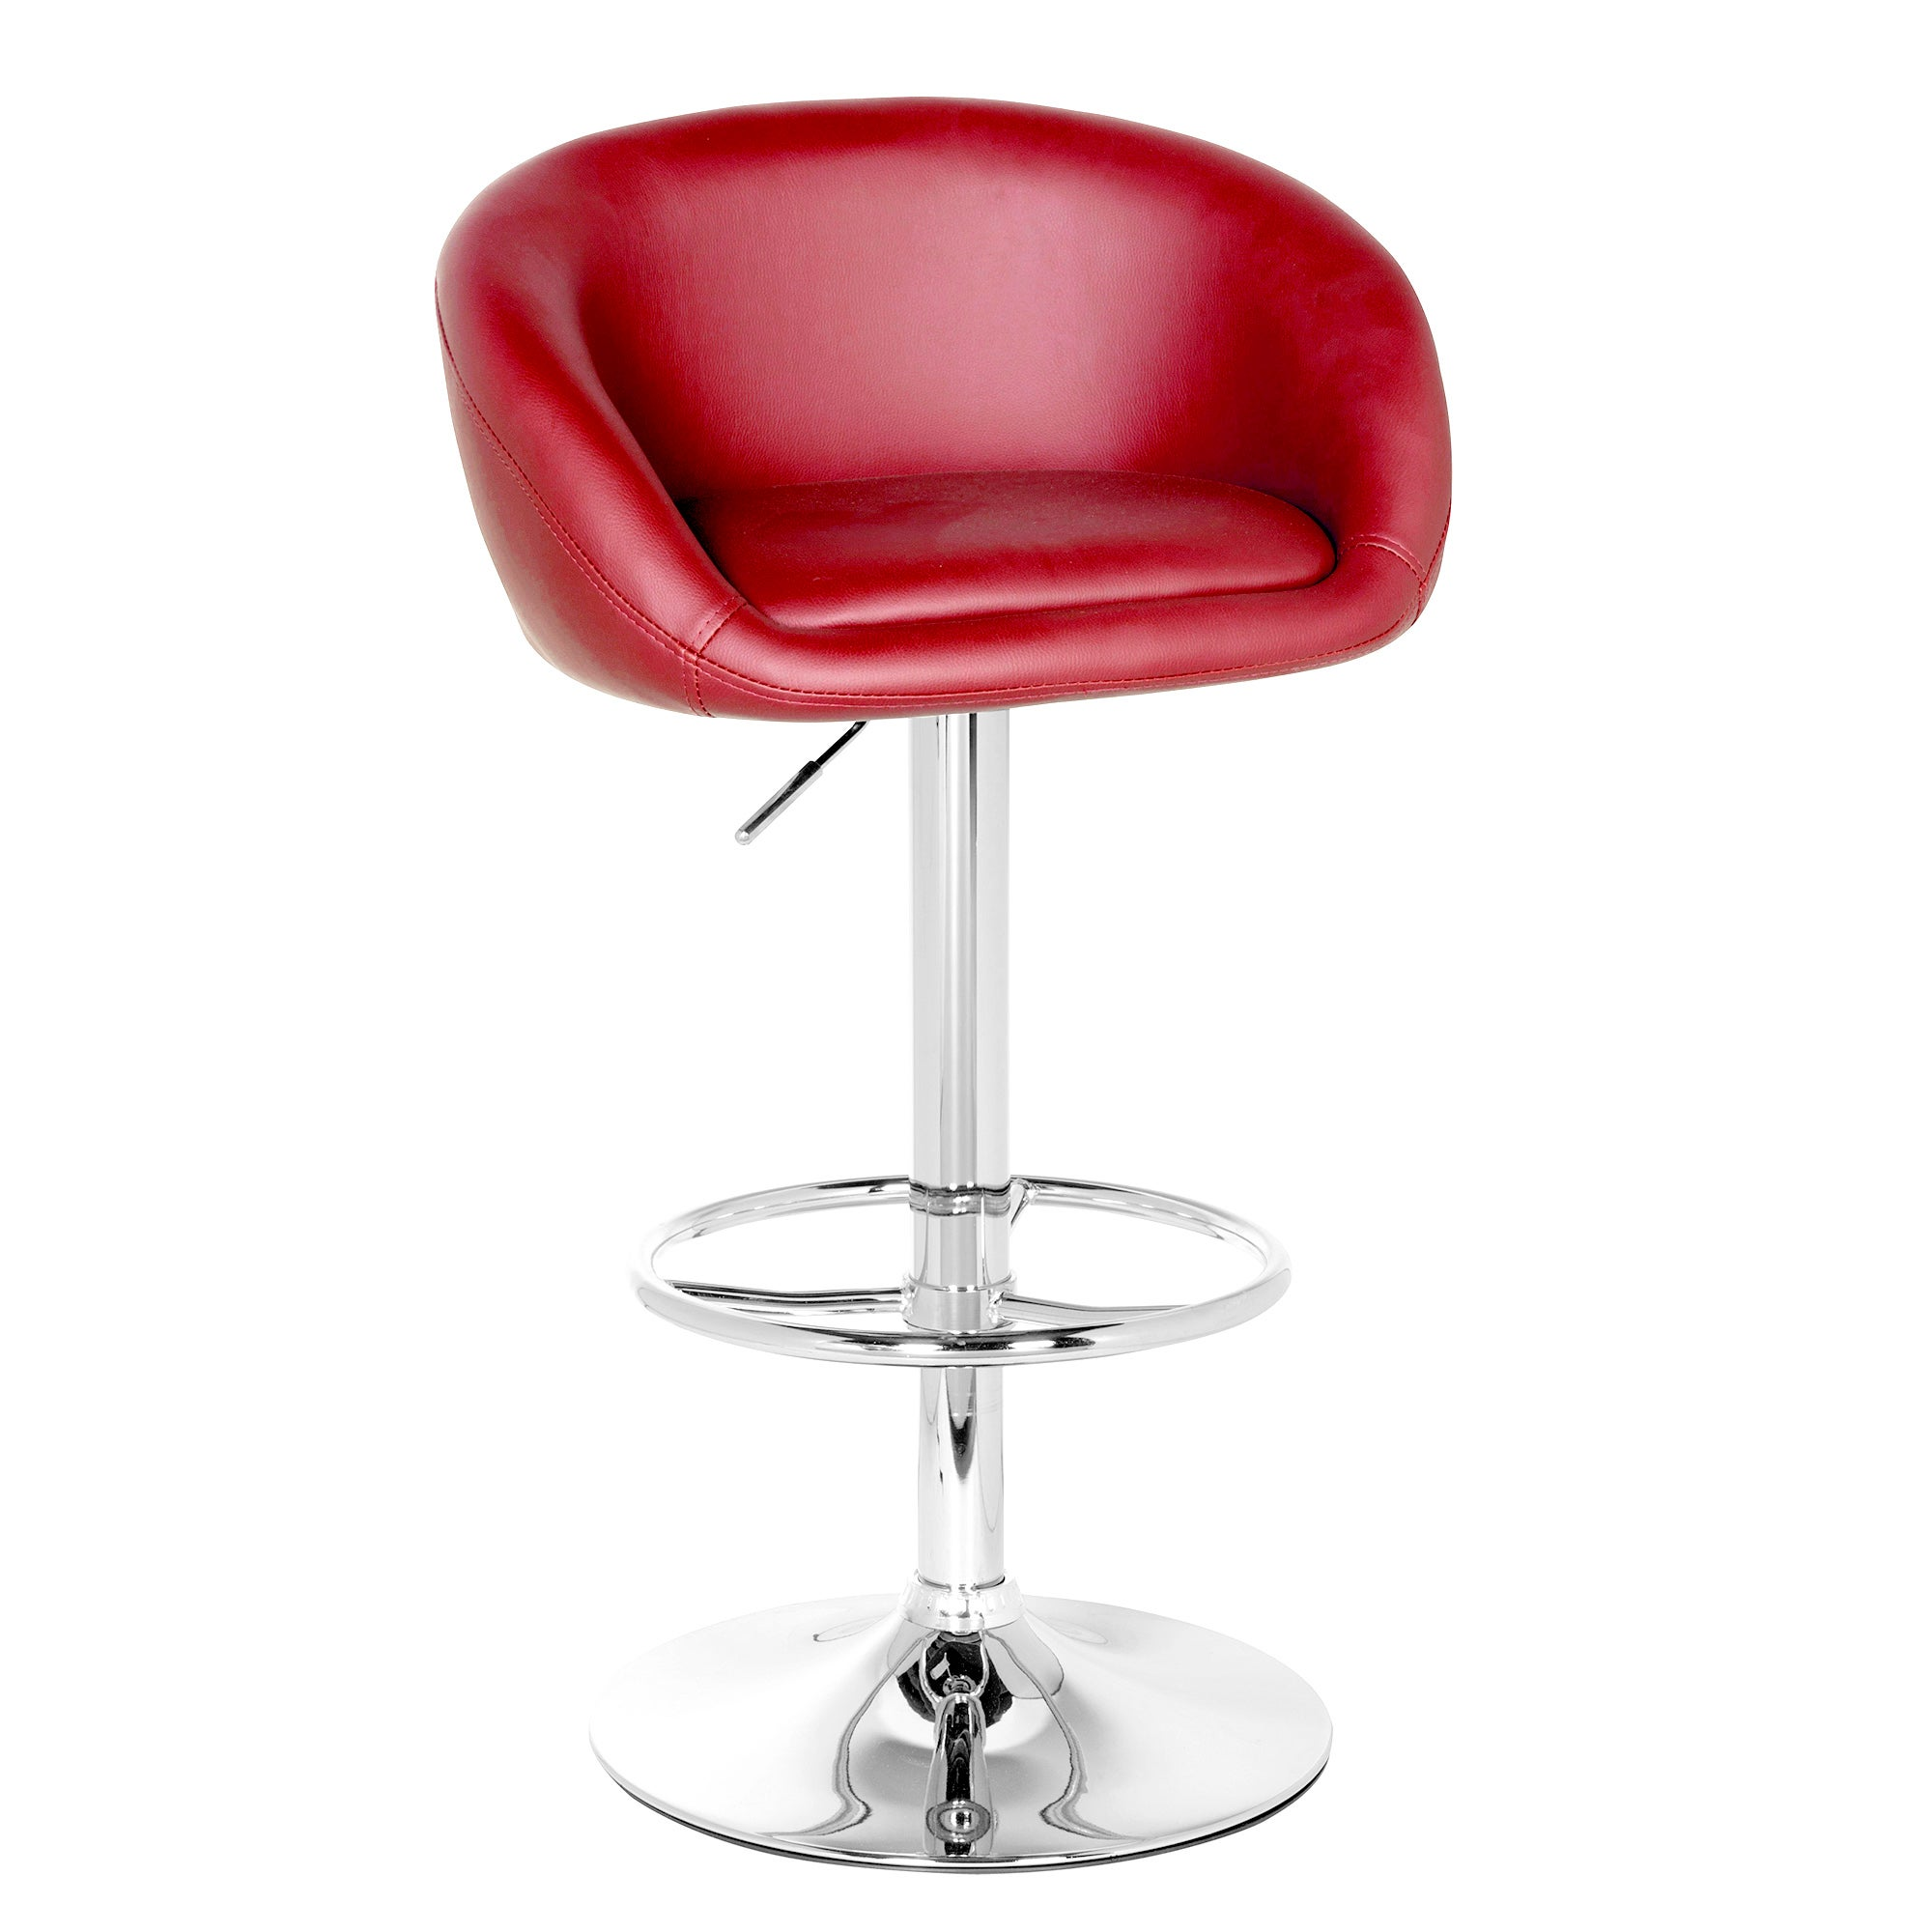 Apollo Bright Upholstered Gas Lift Bar Stool